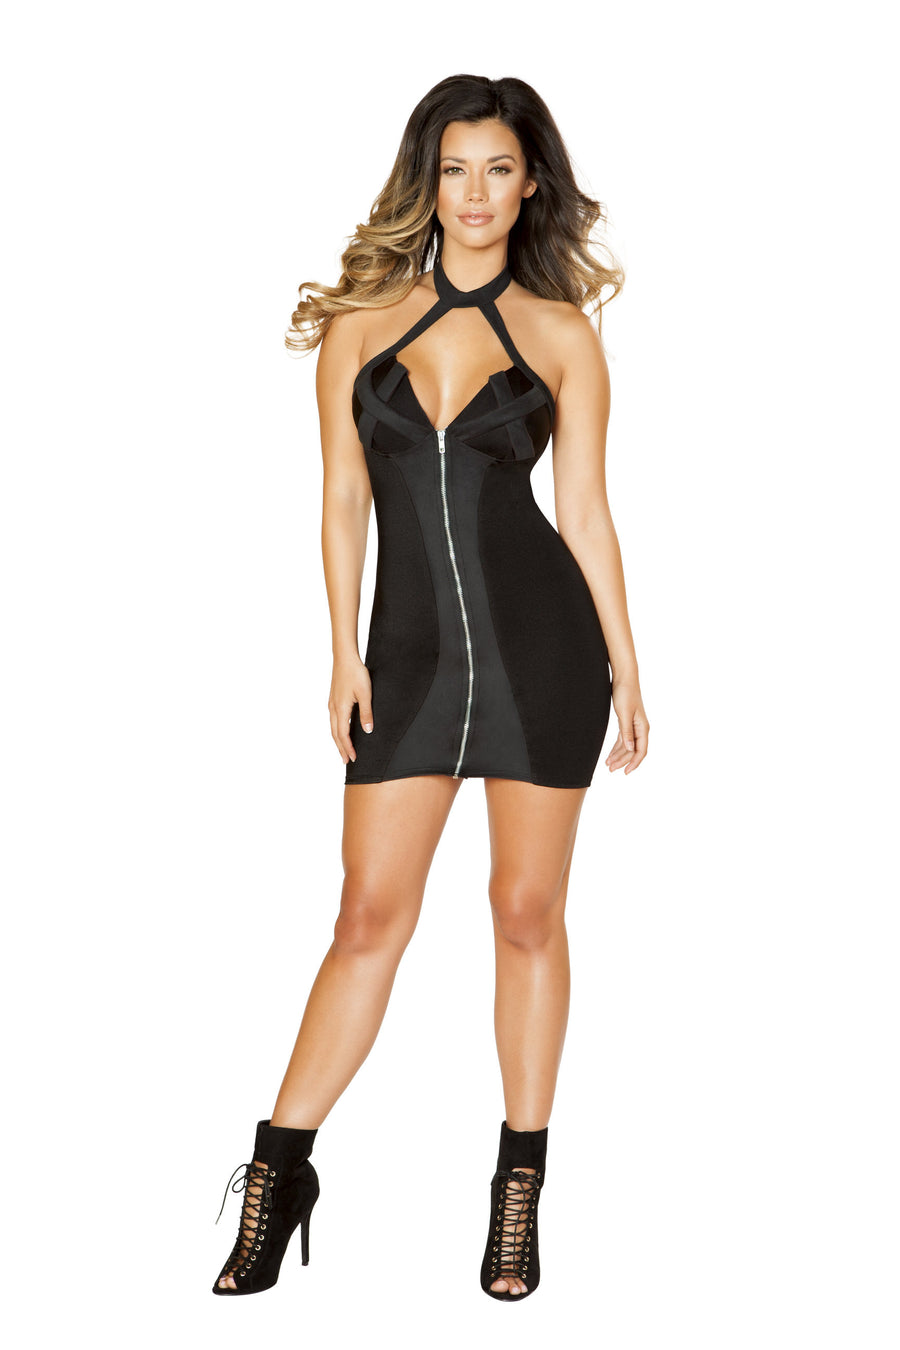 Zip-up Dress with Criss-Cross Two Tone Detail - Mini Dresses, Roma - YourLamode